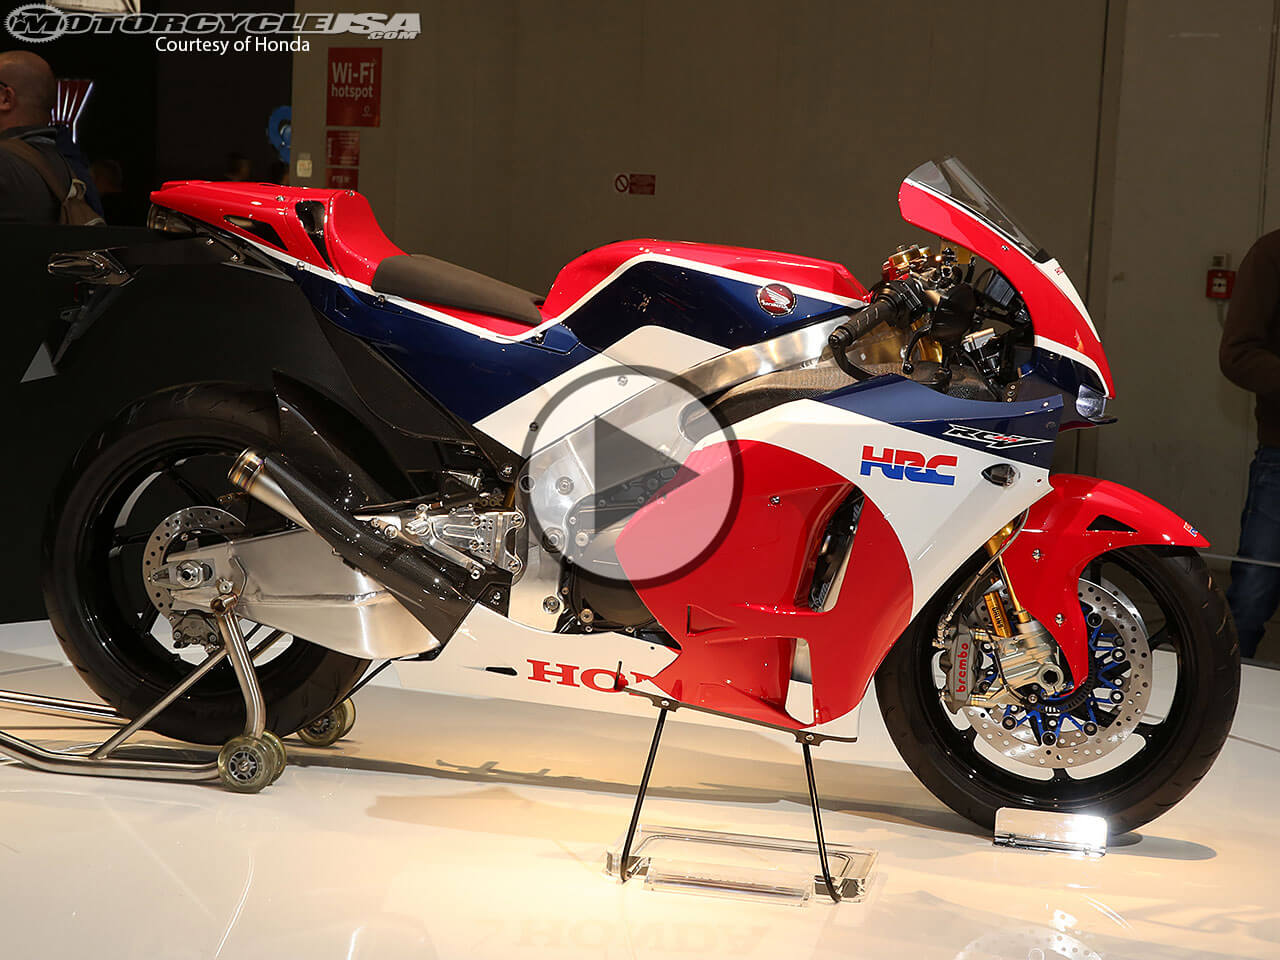 2015 Honda Rc213v S The World S Most Expensive Street